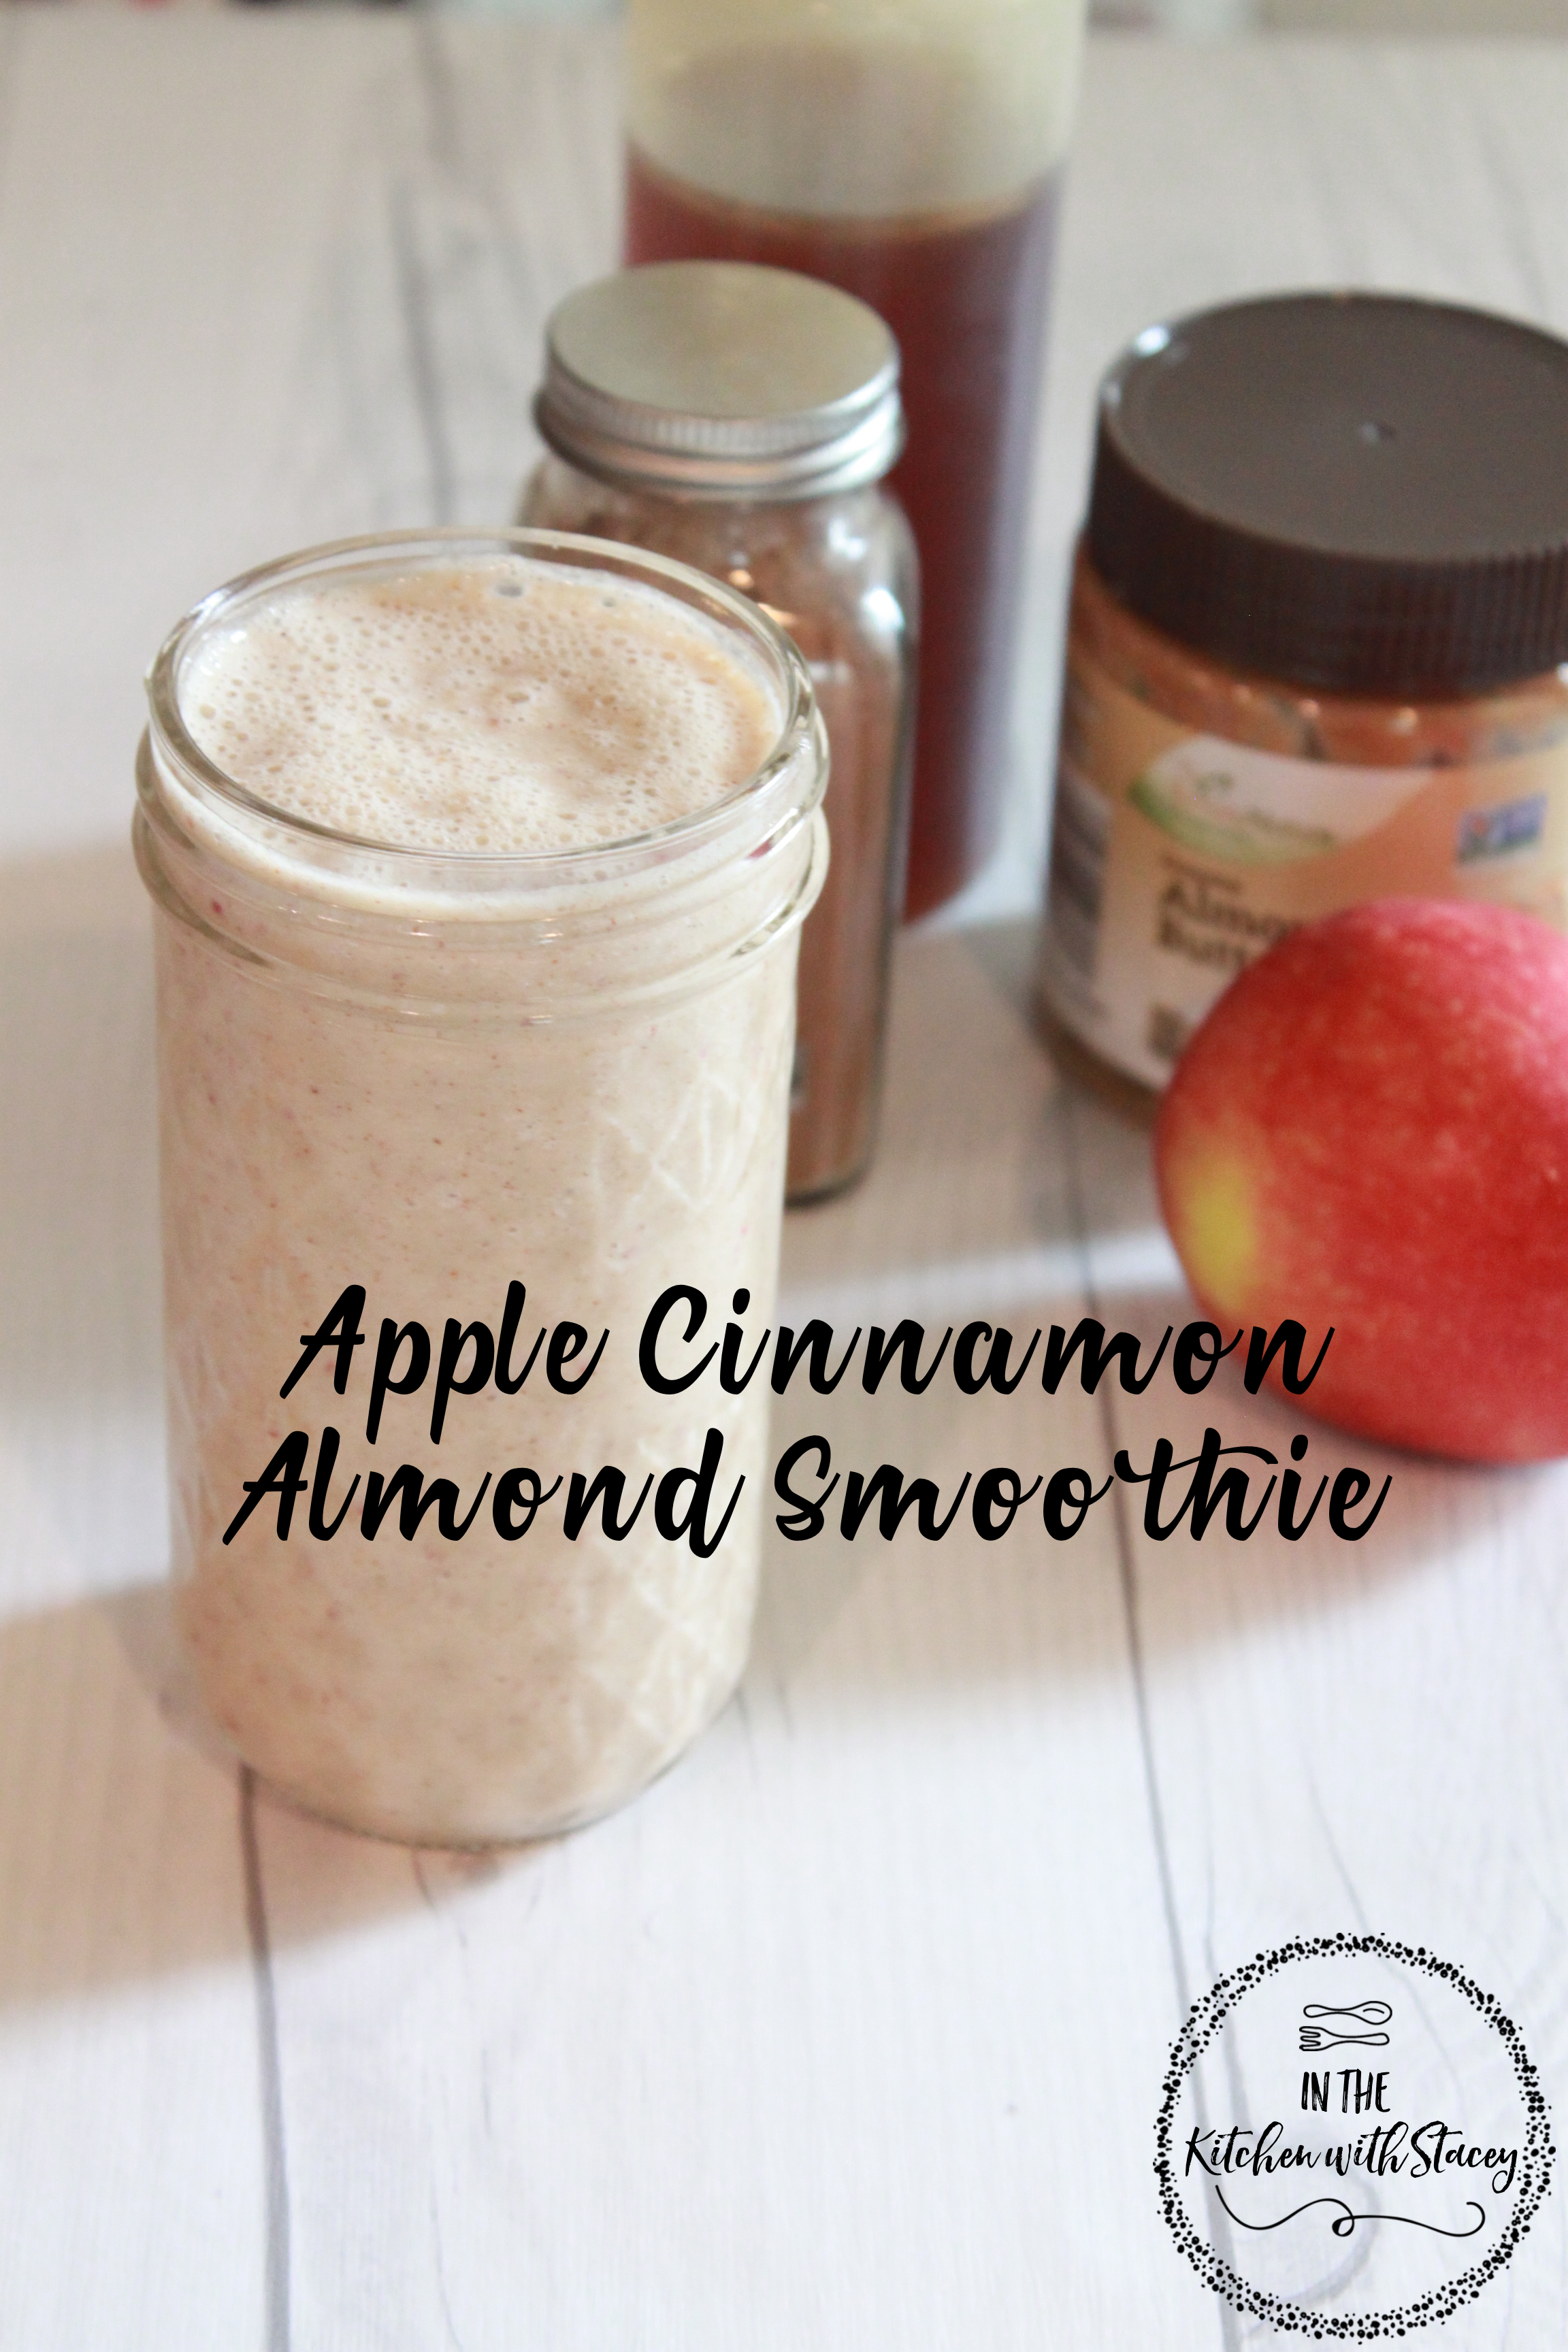 Apple Cinnamon Almond Smoothie